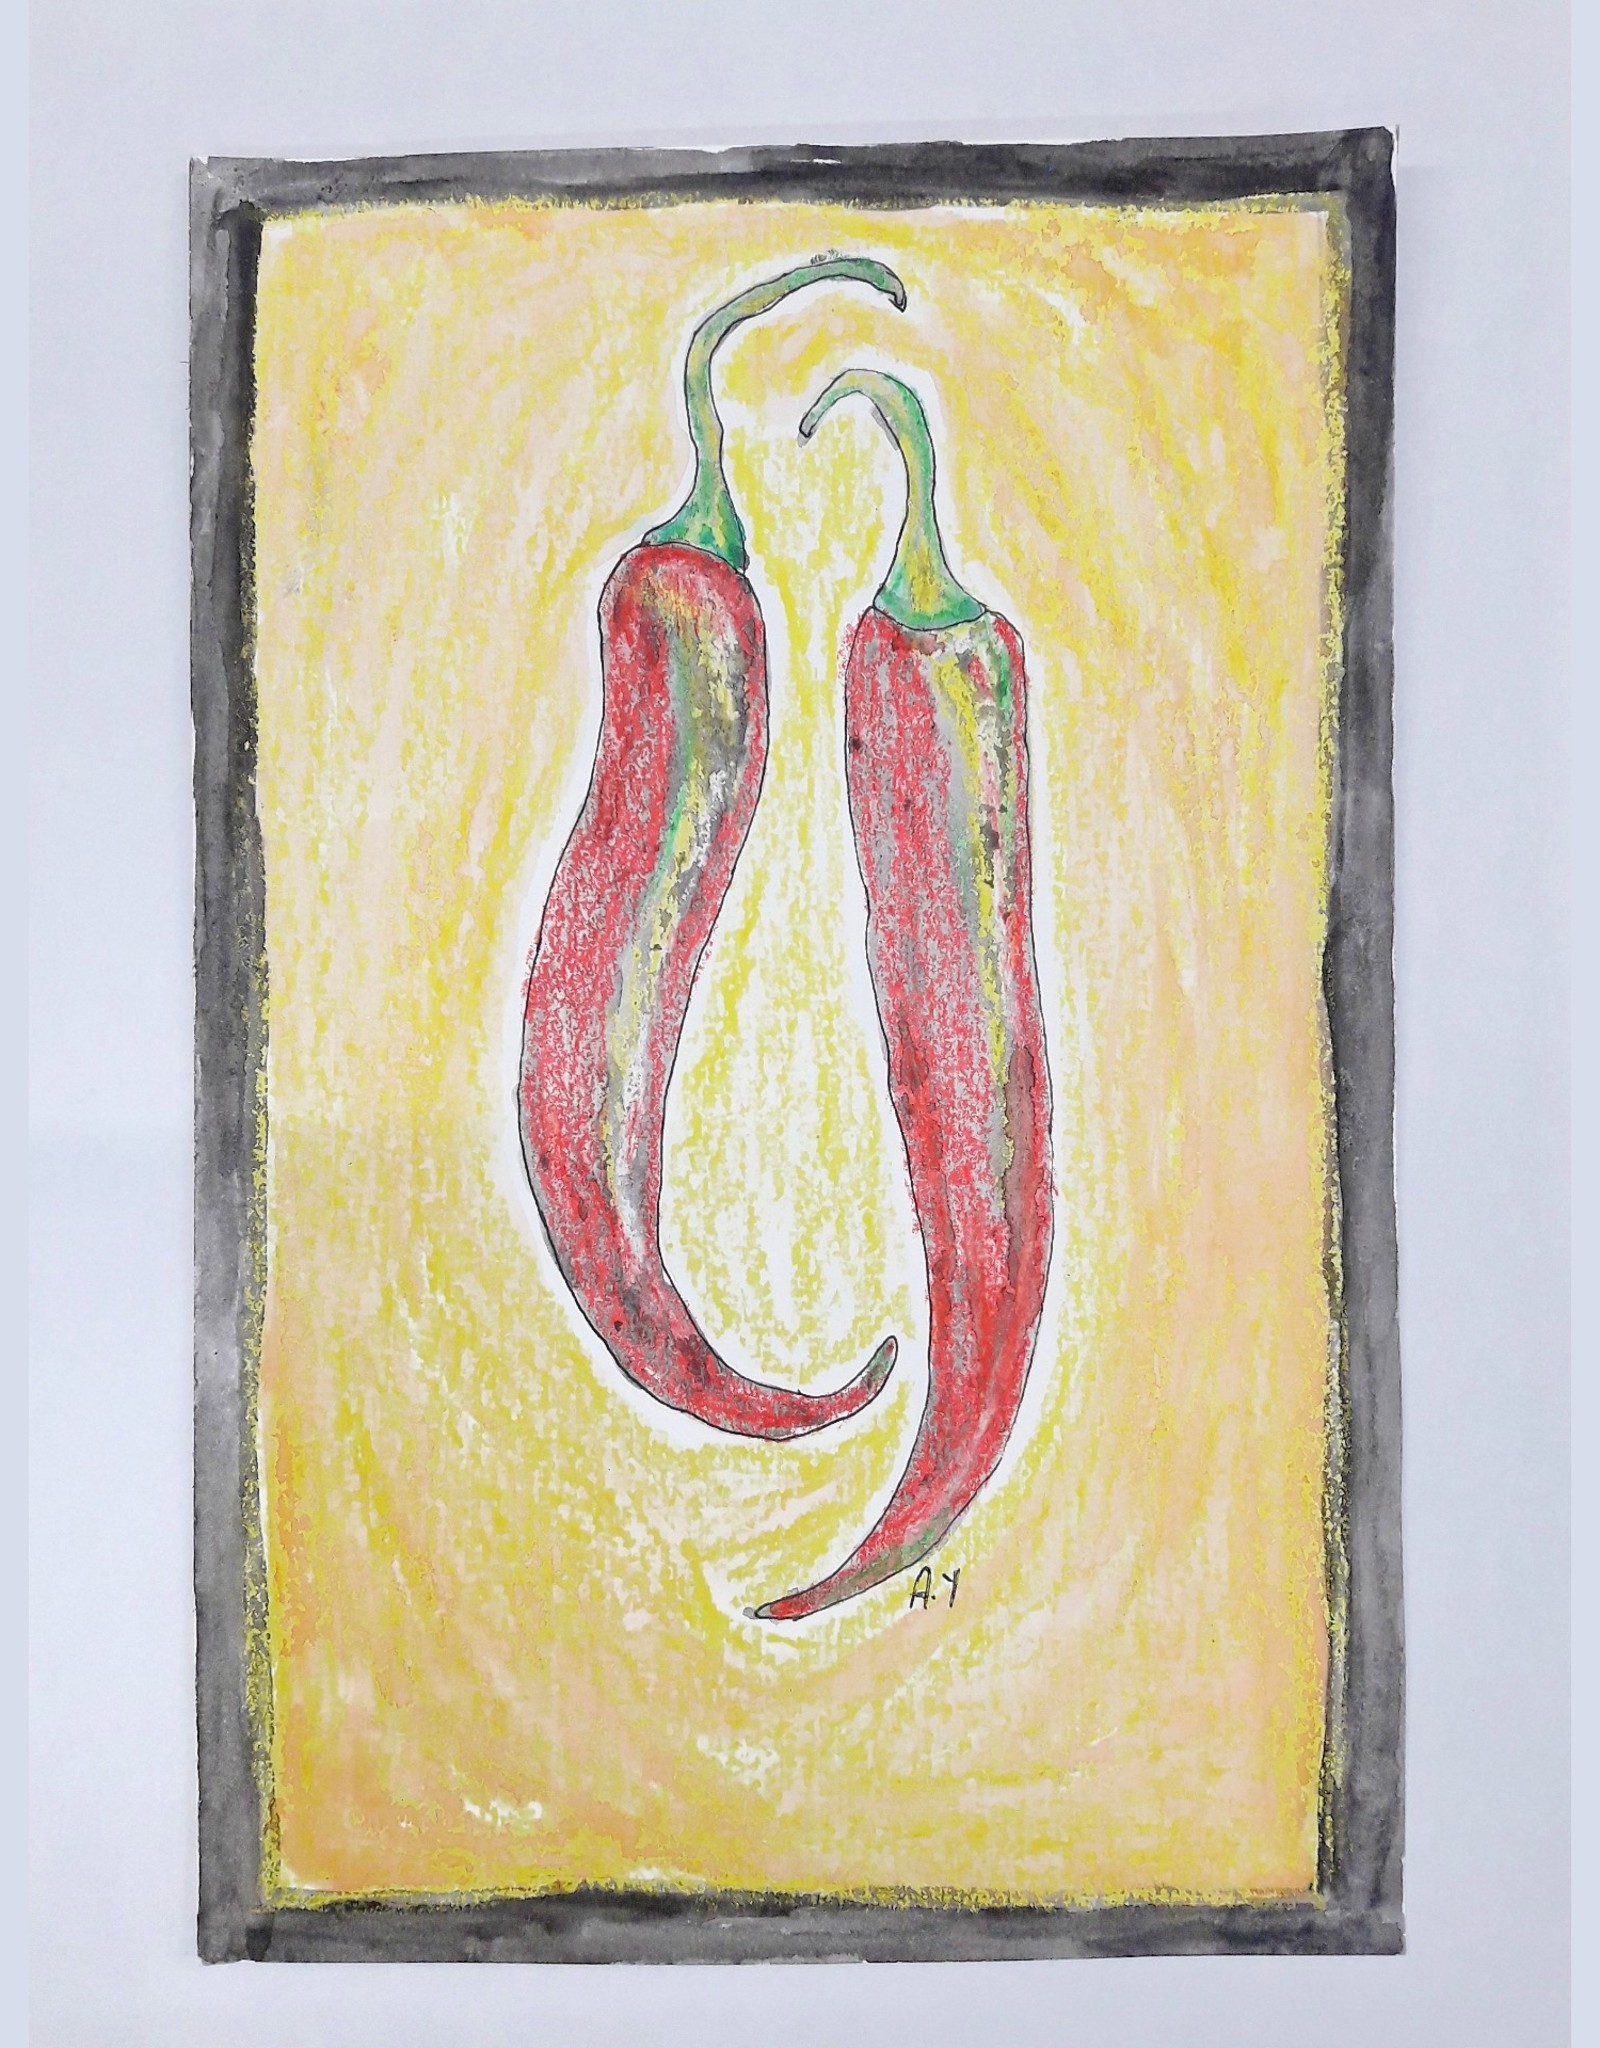 Amsa Mixed Media Art Class Hot and Spicy peppers Tue Jan 26 4:15-5:15pm